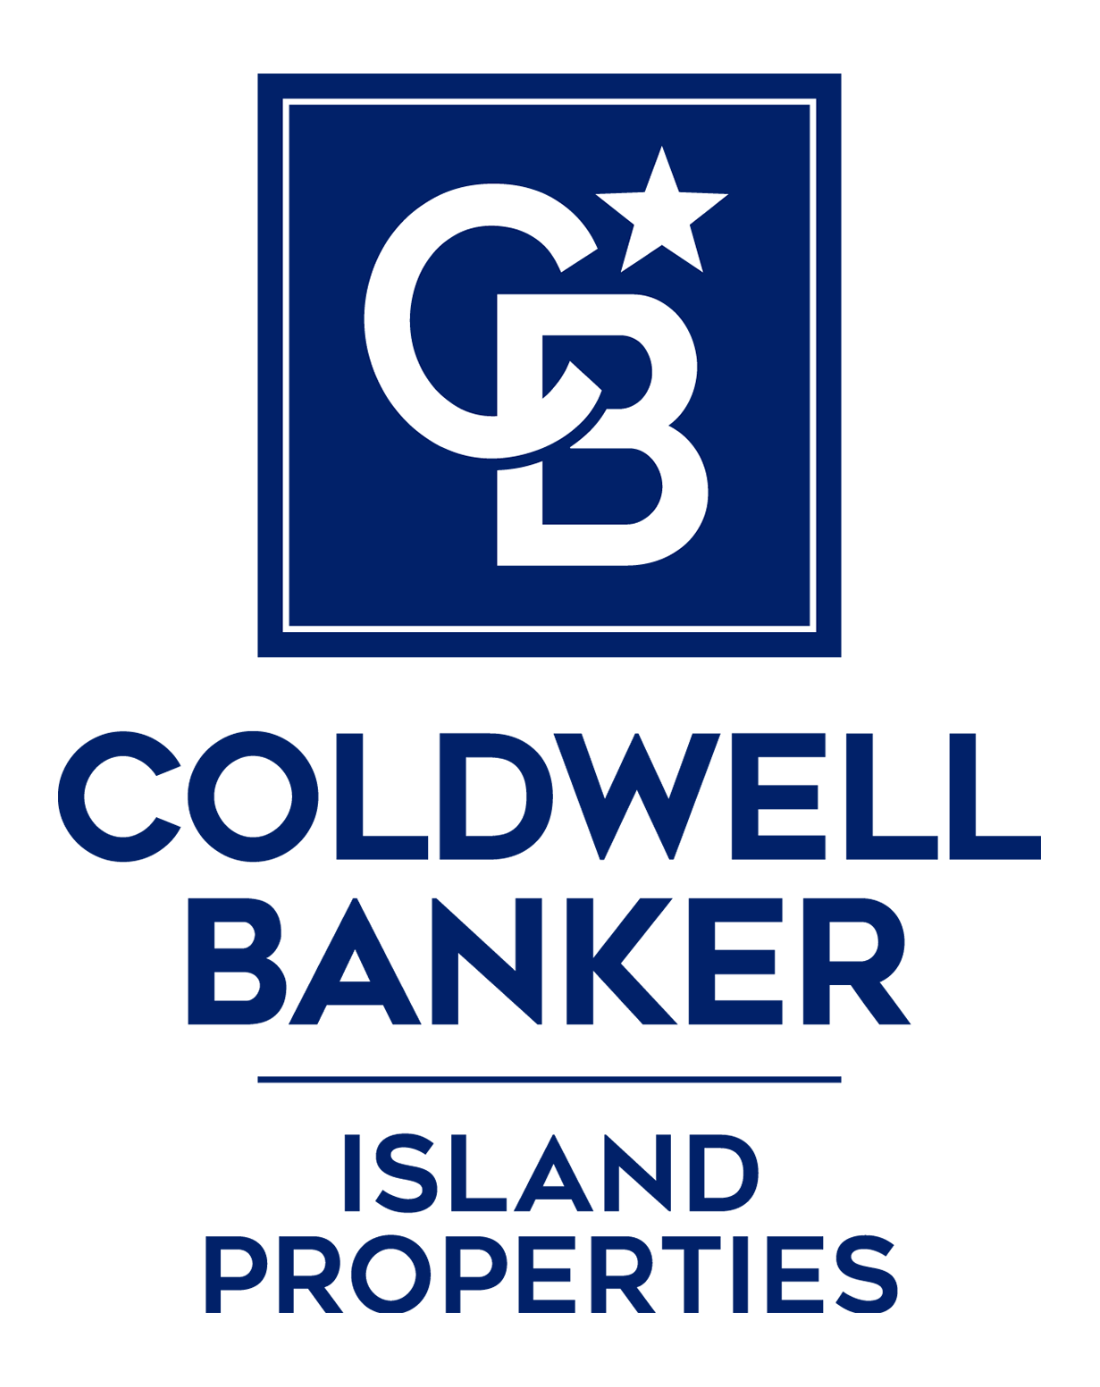 Terry Alling - Coldwell Banker Island Properties Logo